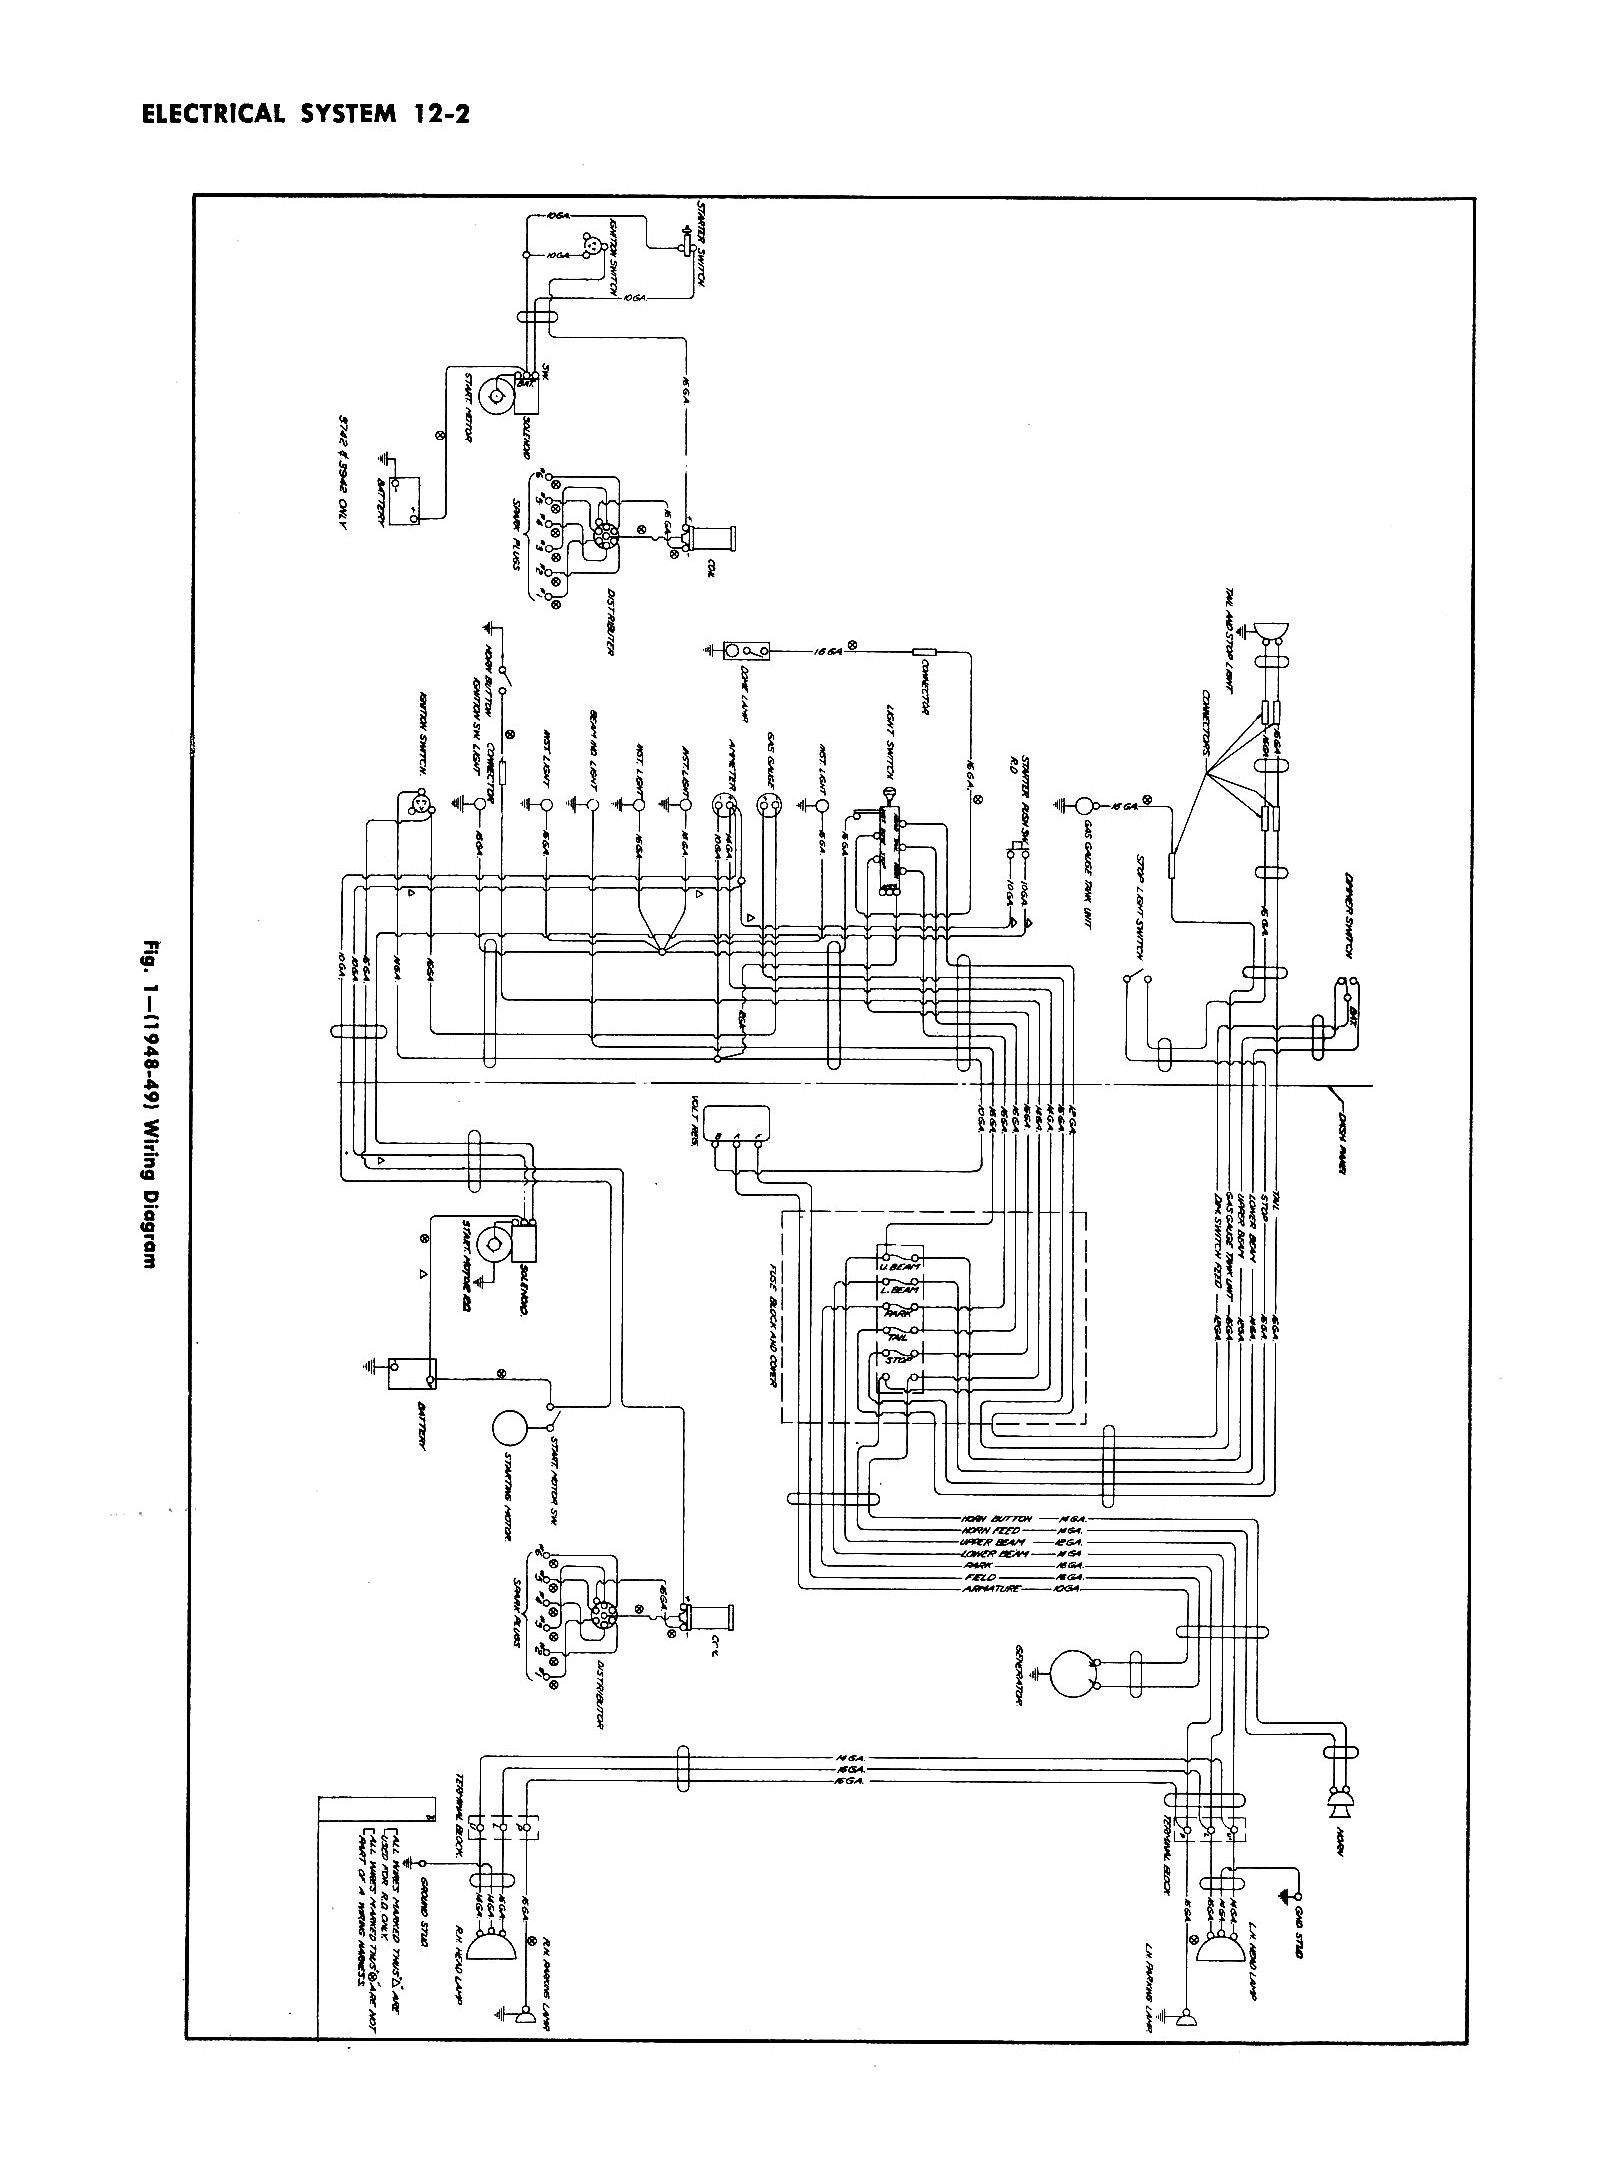 wiring diagram for 1940 chevy truck with Wiring on 1934 Ford Wiring Schematic as well 55 Chevy Wiring Diagram further 9 Steering Gear E83w 3842 additionally 57 Chevy Belair Wiring Diagram further Jeep Parts M38a1 Wiring Diagram.